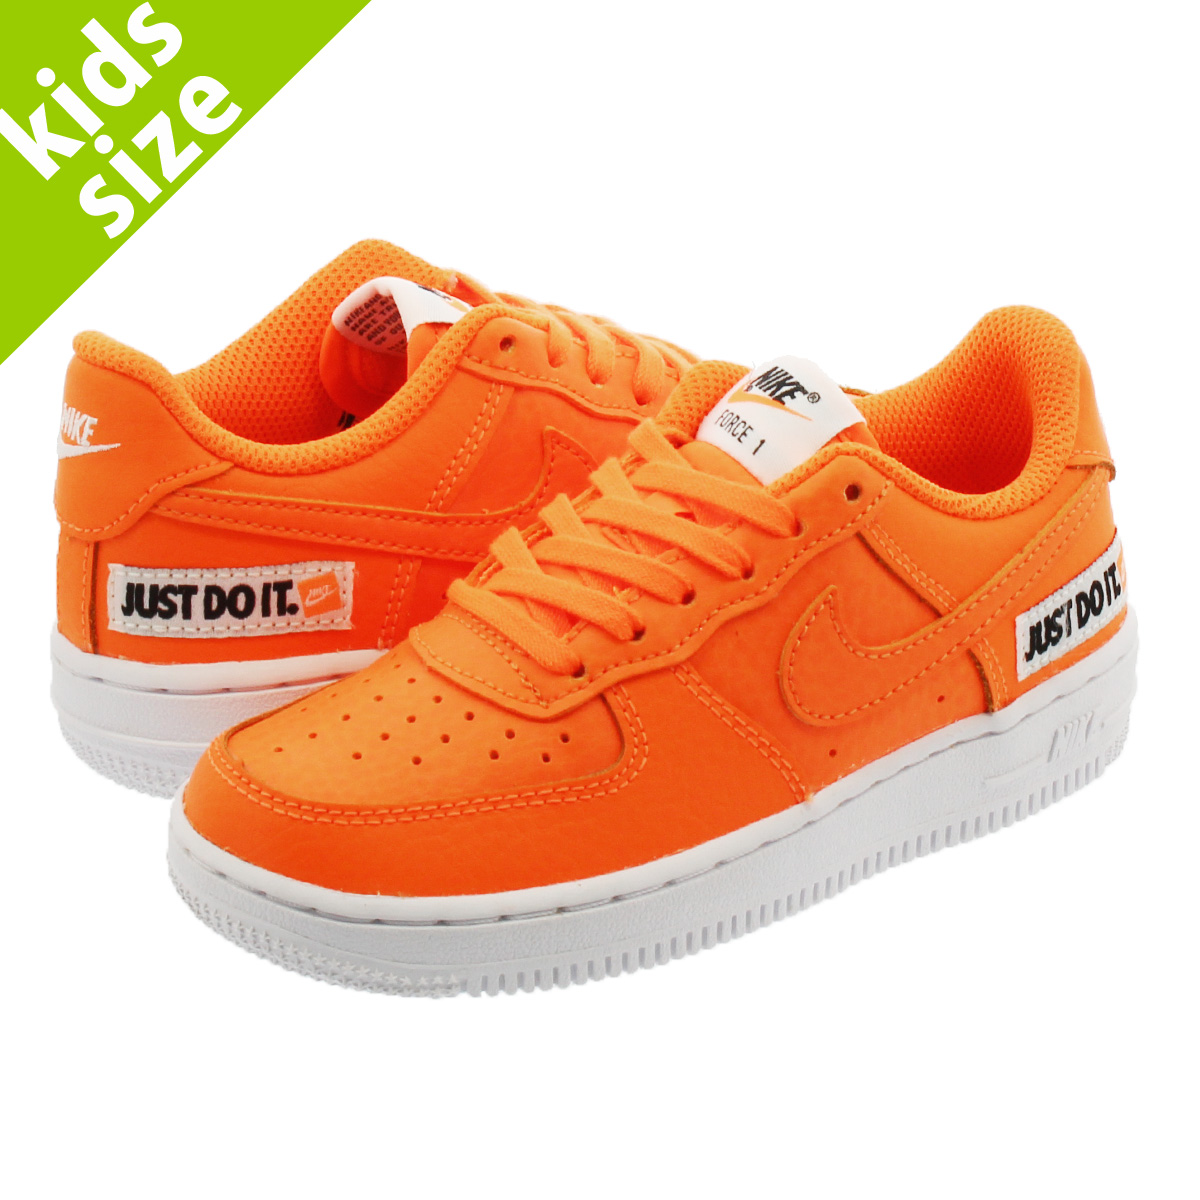 【キッズサイズ】【16-22cm】 NIKE AIR FORCE 1 LV8 PS 【JUST DO IT】 ナイキ エアフォース 1 LV8 PS TOTAL ORANGE/WHITE/BLACK at2988-800